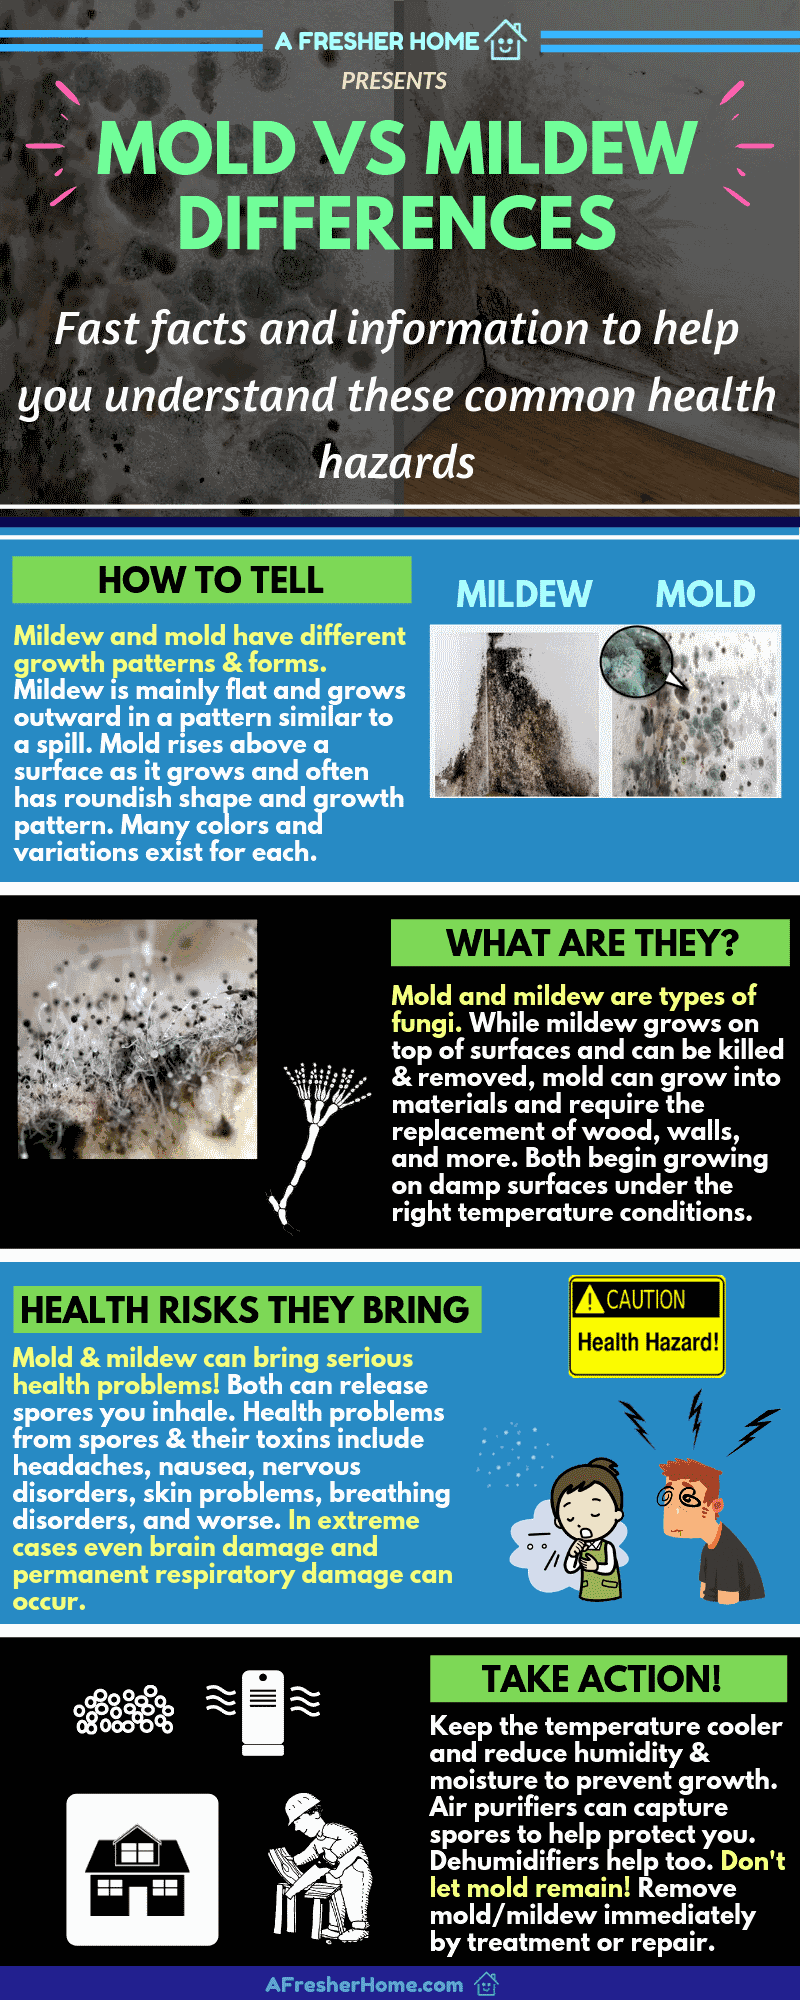 Mold vs mildew difference facts infographic guide